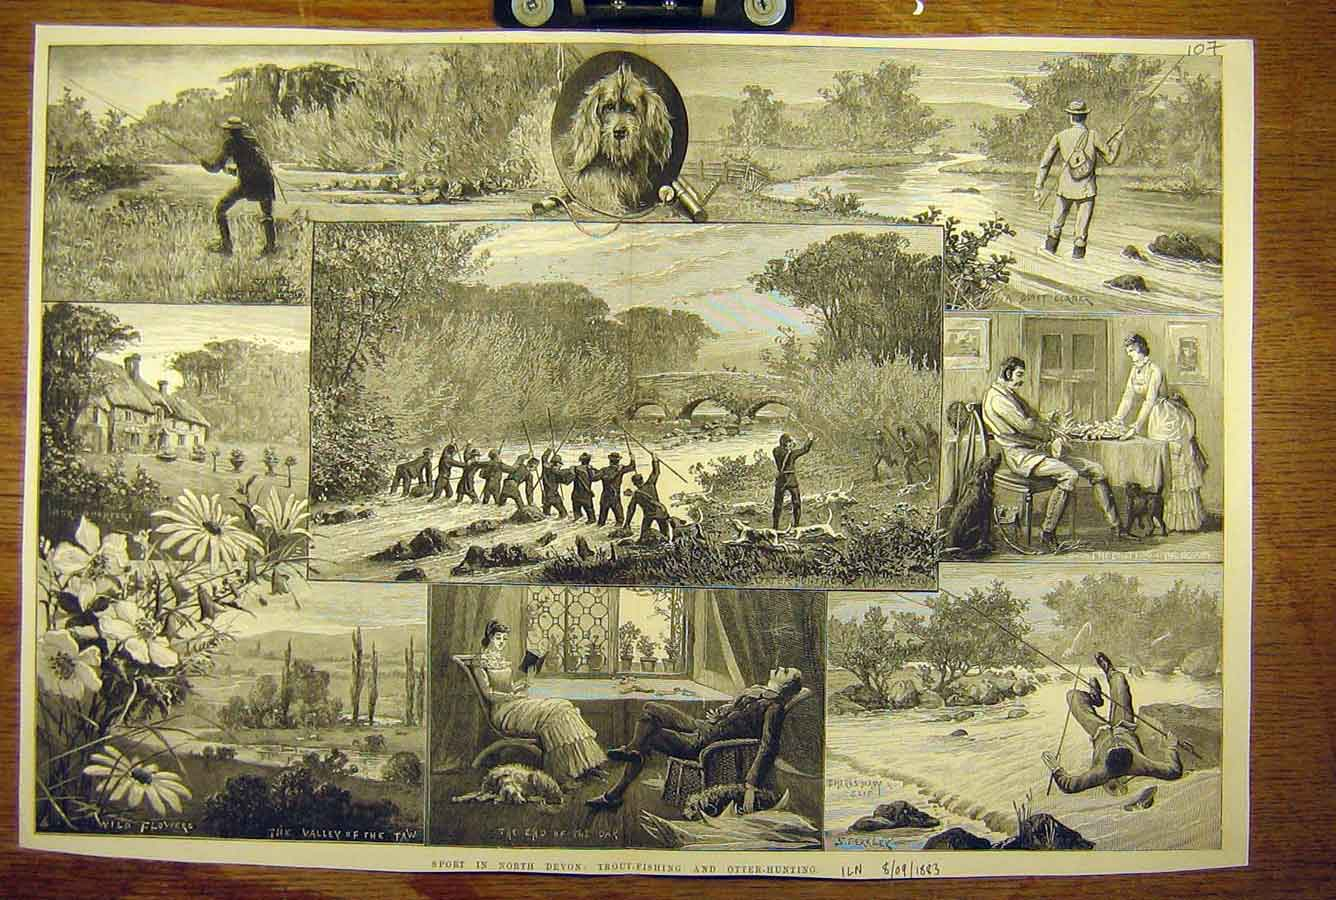 Print 1883 Trout-Fishing Otter-Hunting North-Devon Sketches 07T8781 Old Original